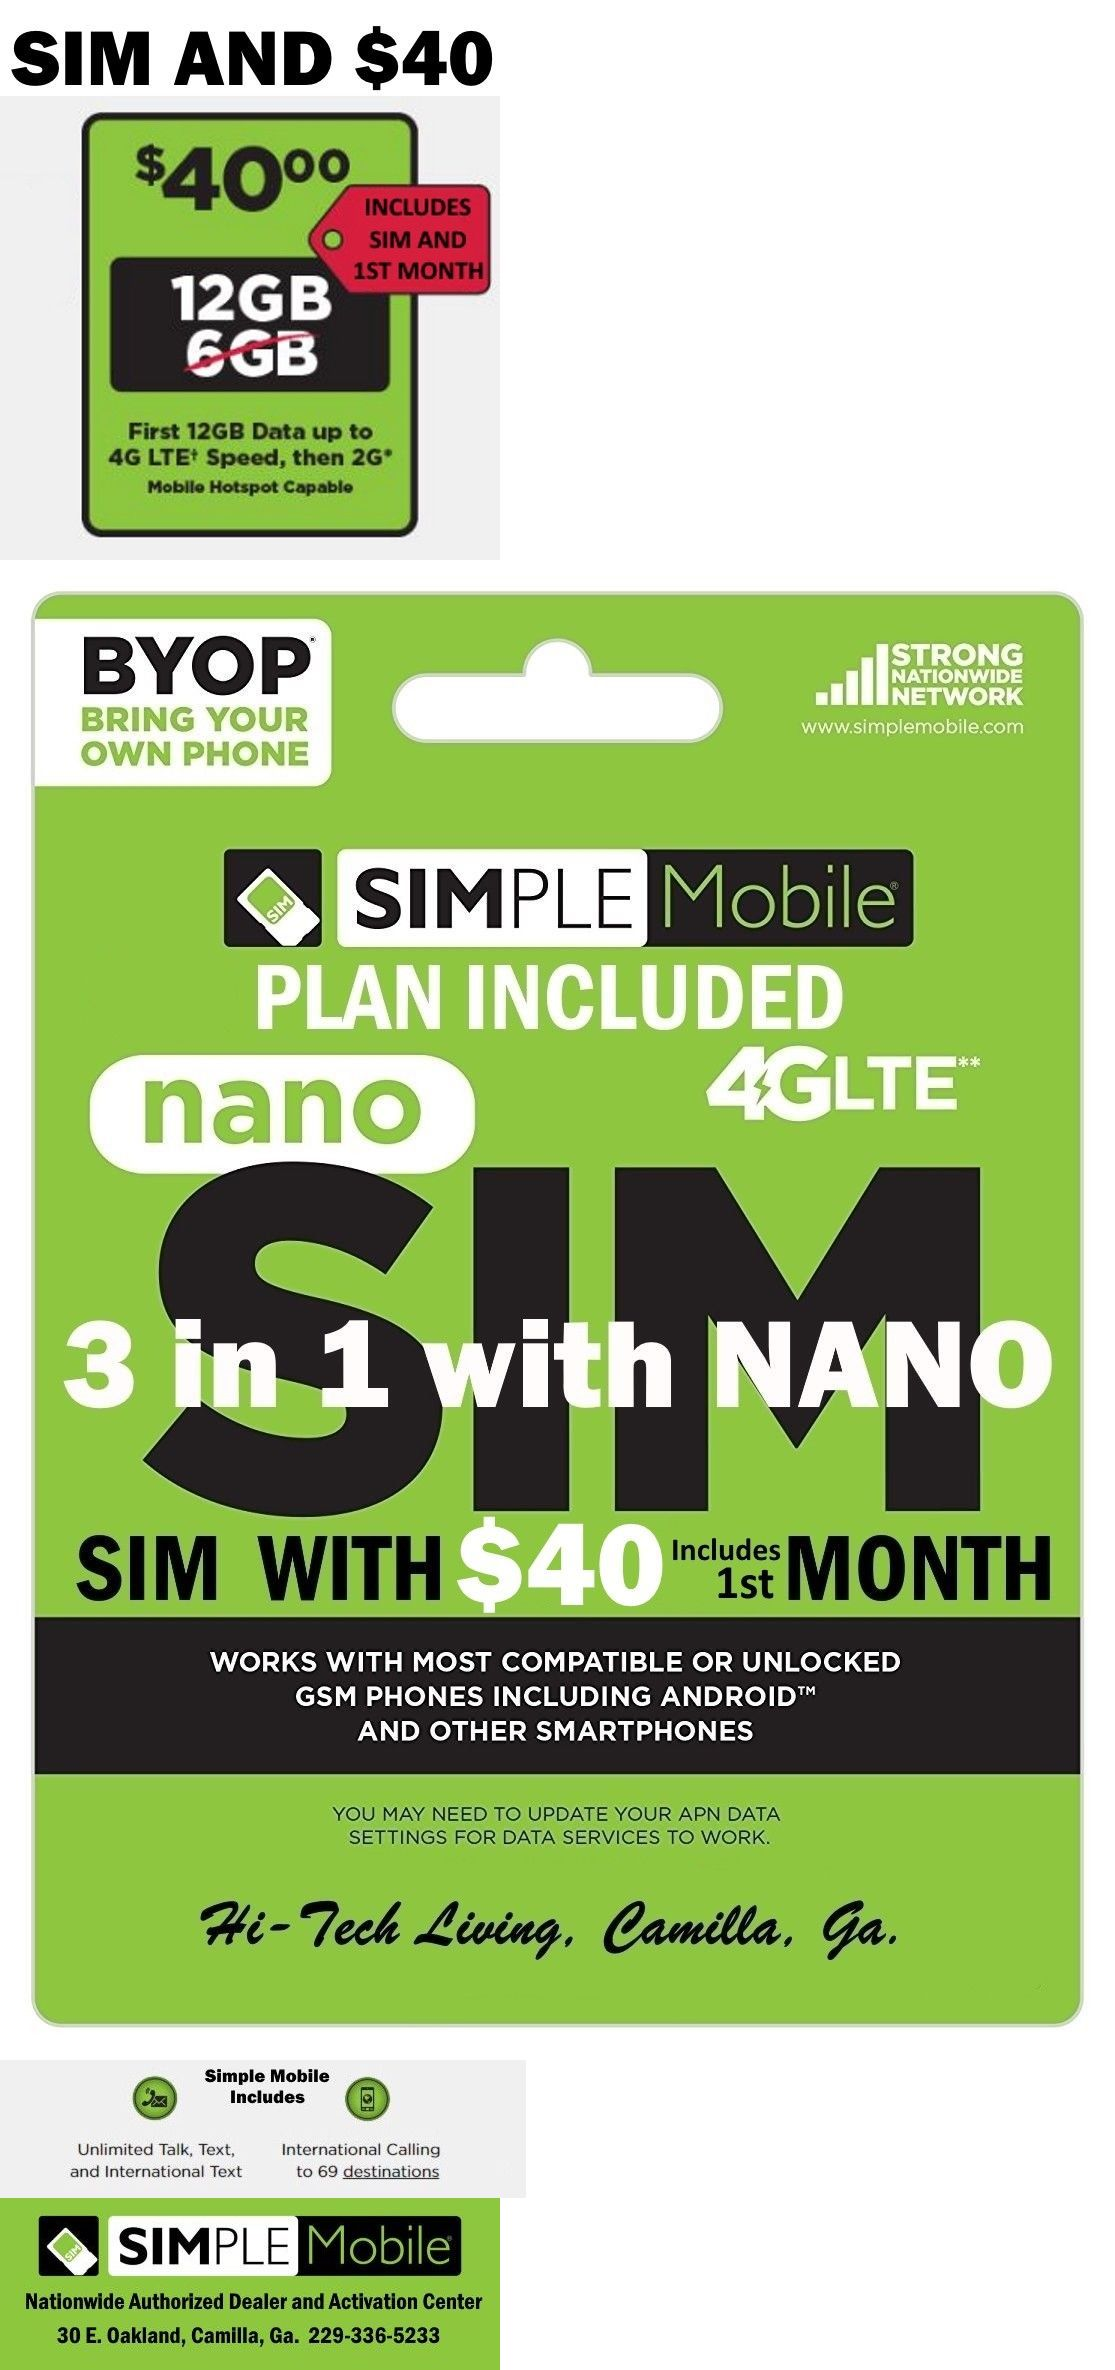 Details About Simple Mobile Sim Card 40 Plan Included 30 Days